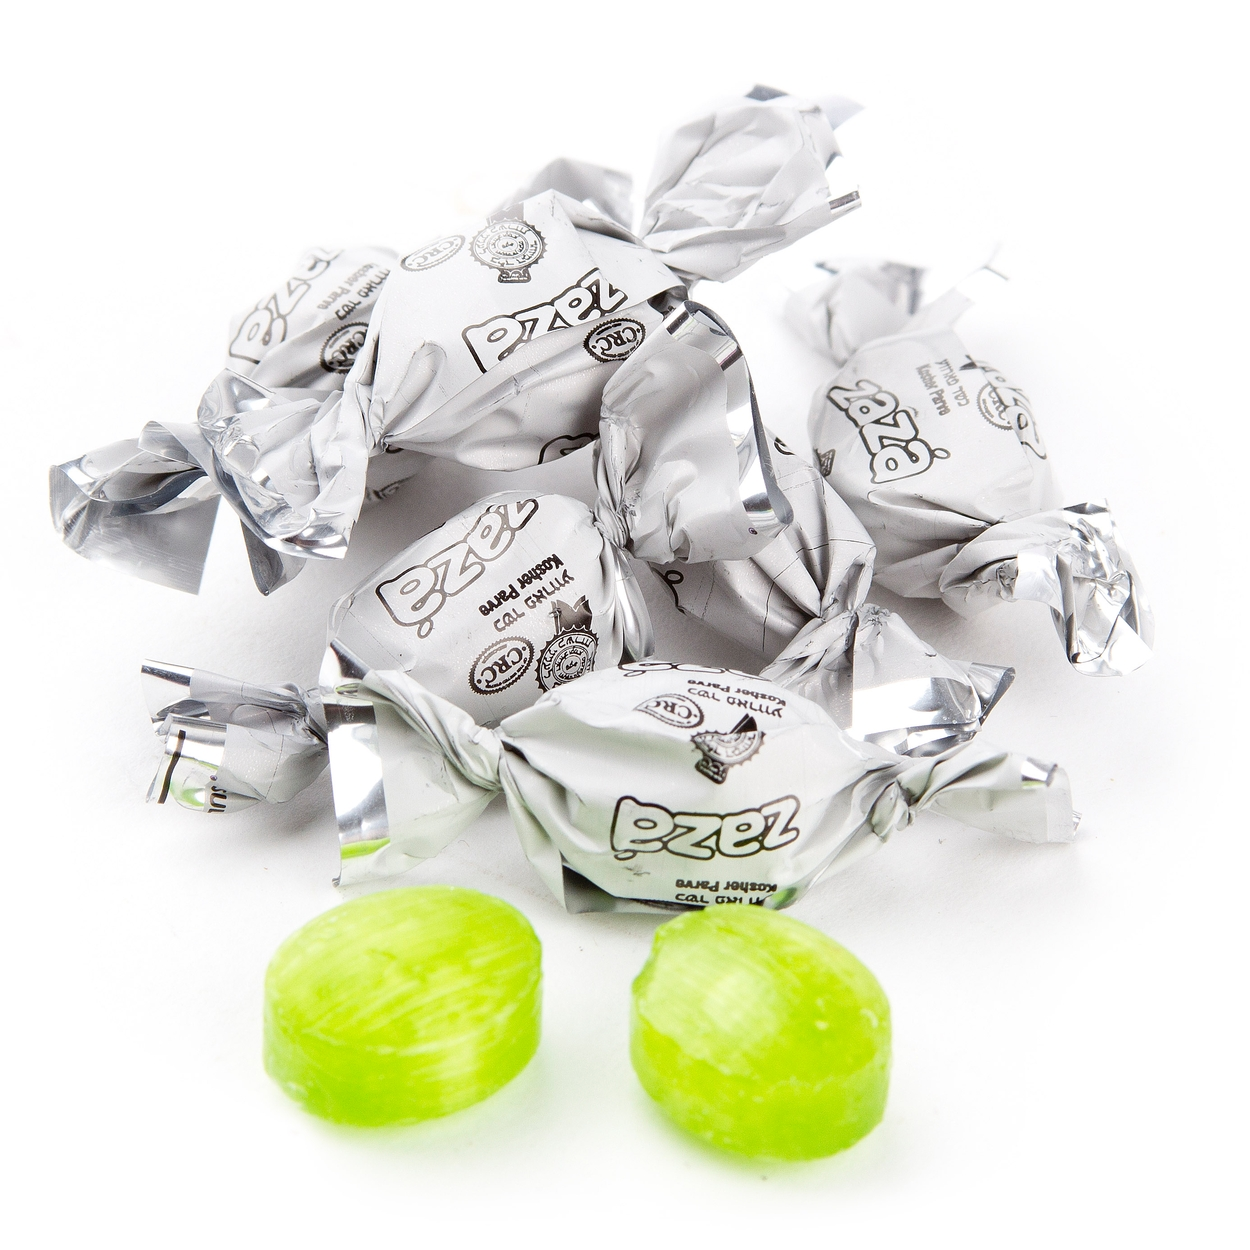 Zaza Mini White Foil Hard Candy - Green Apple • Wrapped Candy • Bulk ...